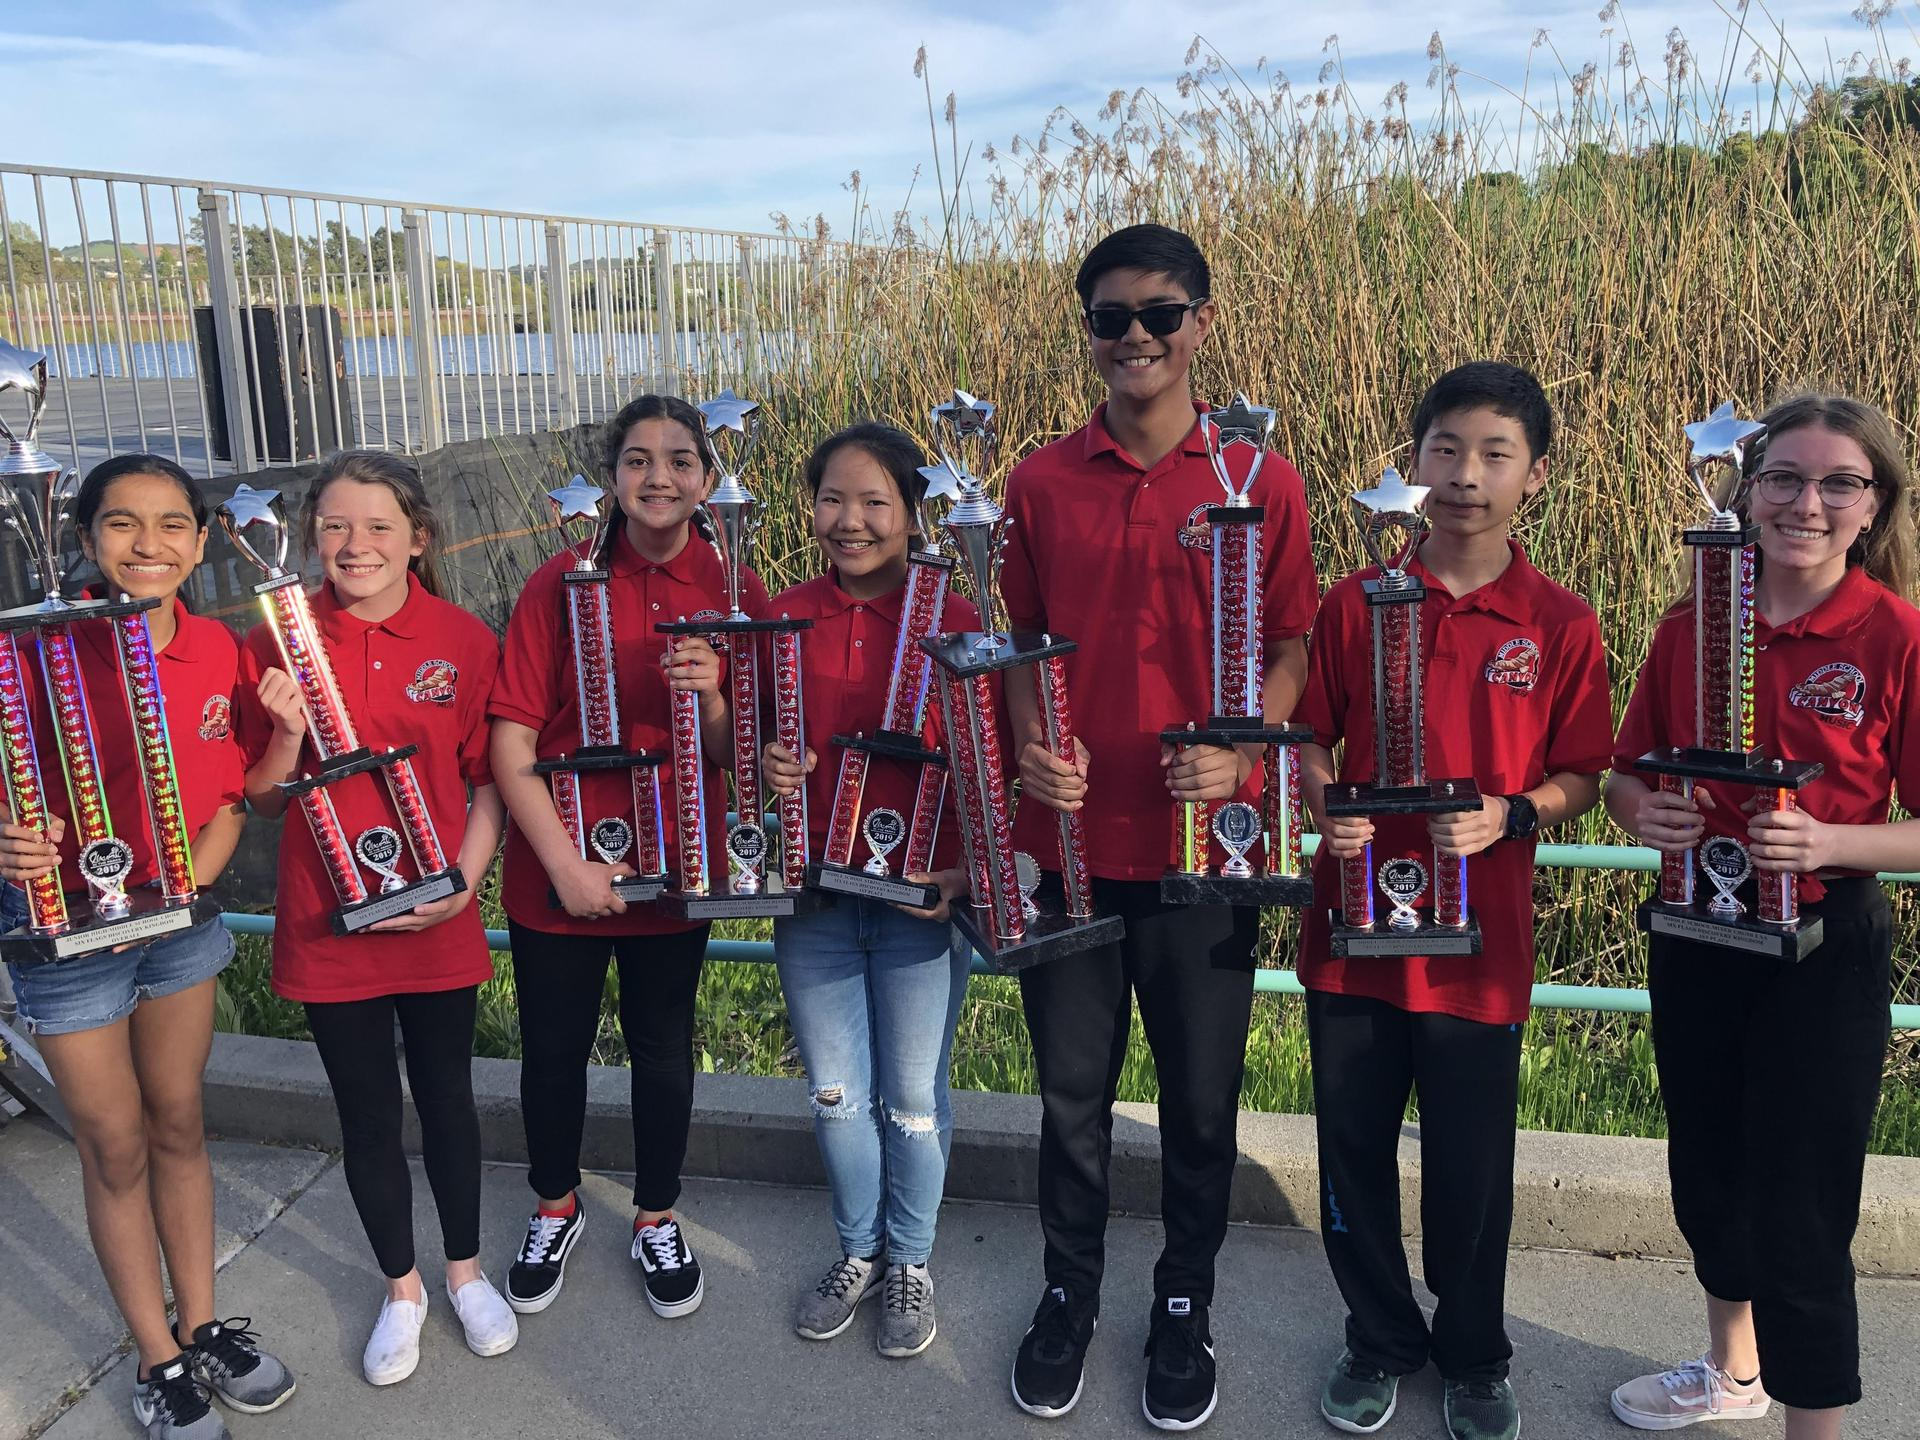 Students with trophies after the Music in the Parks Award Ceremony